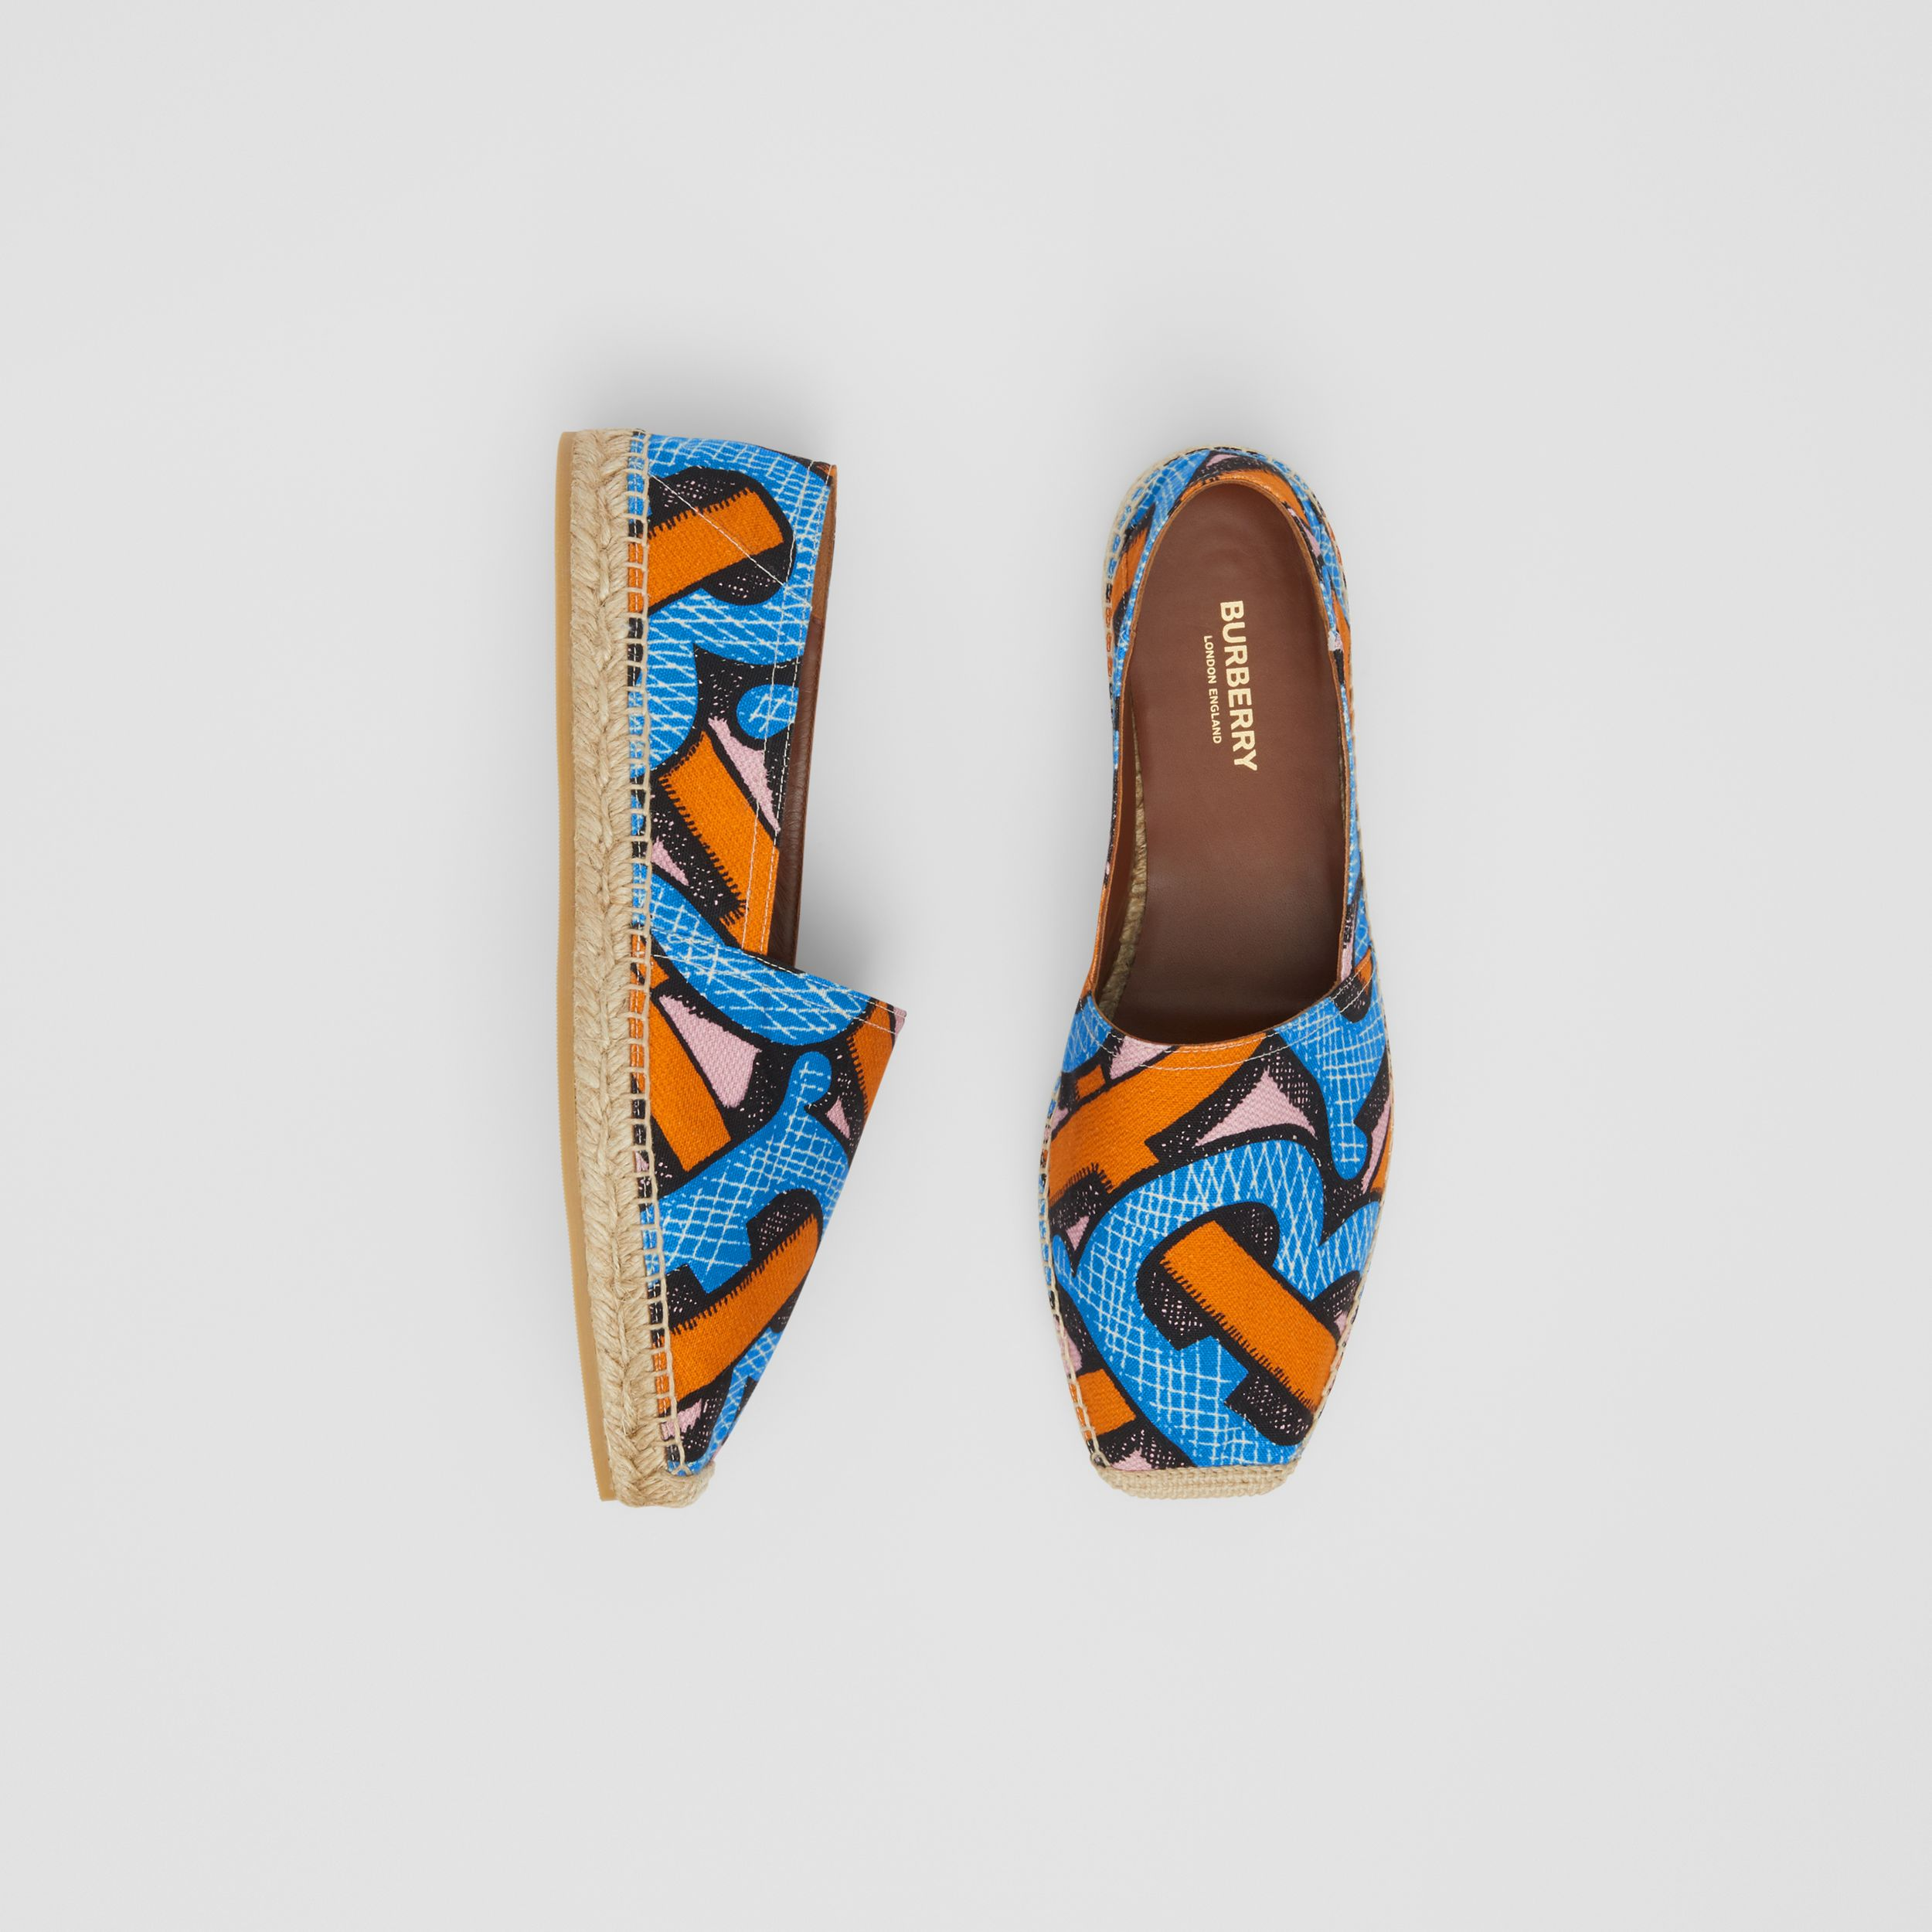 Monogram Print Cotton Canvas Espadrilles in Bright Cobalt - Women | Burberry Canada - 1